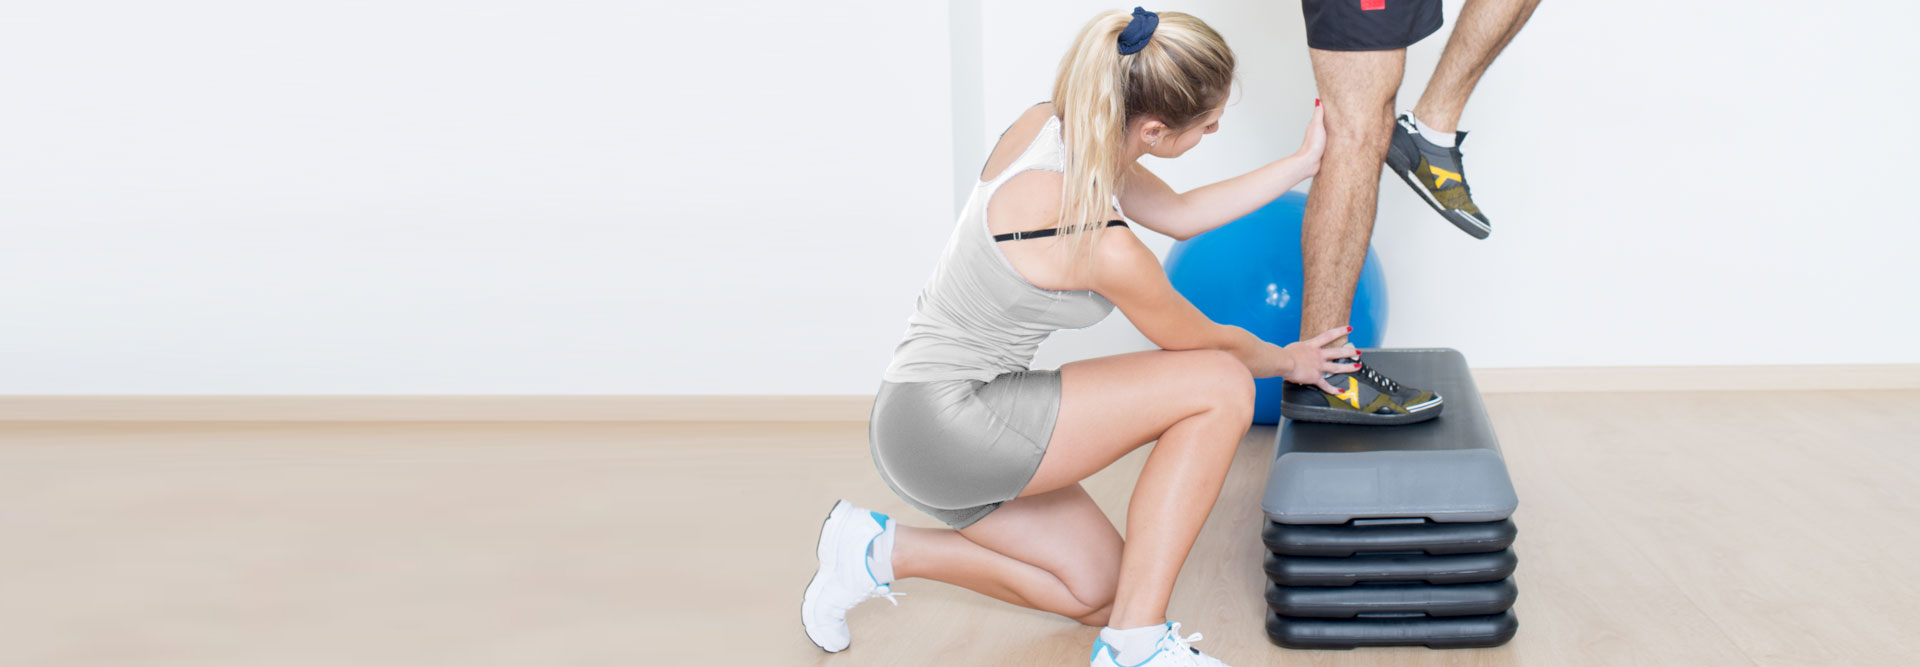 personal training physiotherapie hameln